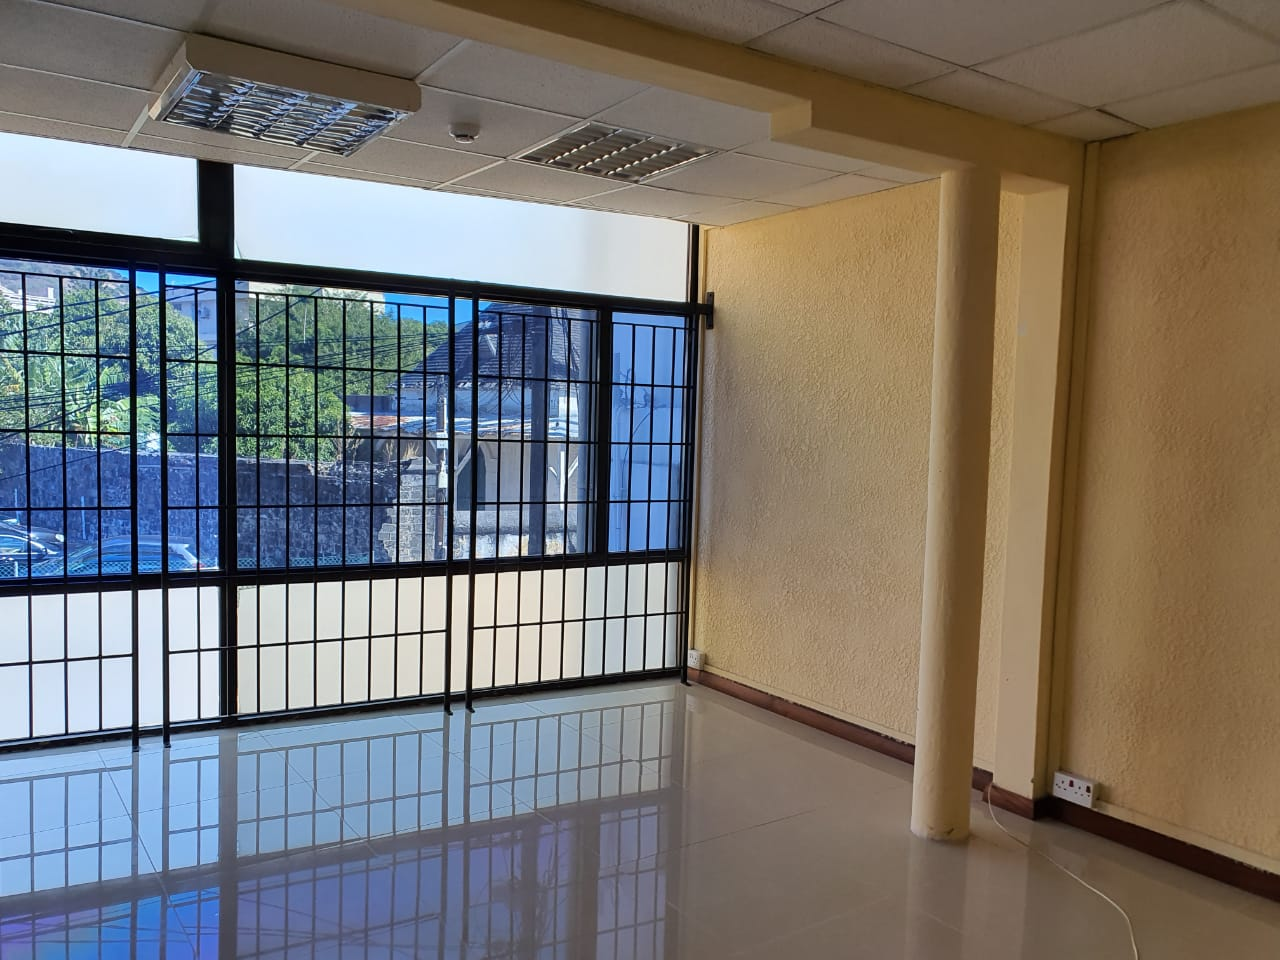 Third Floor Office Space for Rent - Edith Cavell Street, Port Louis